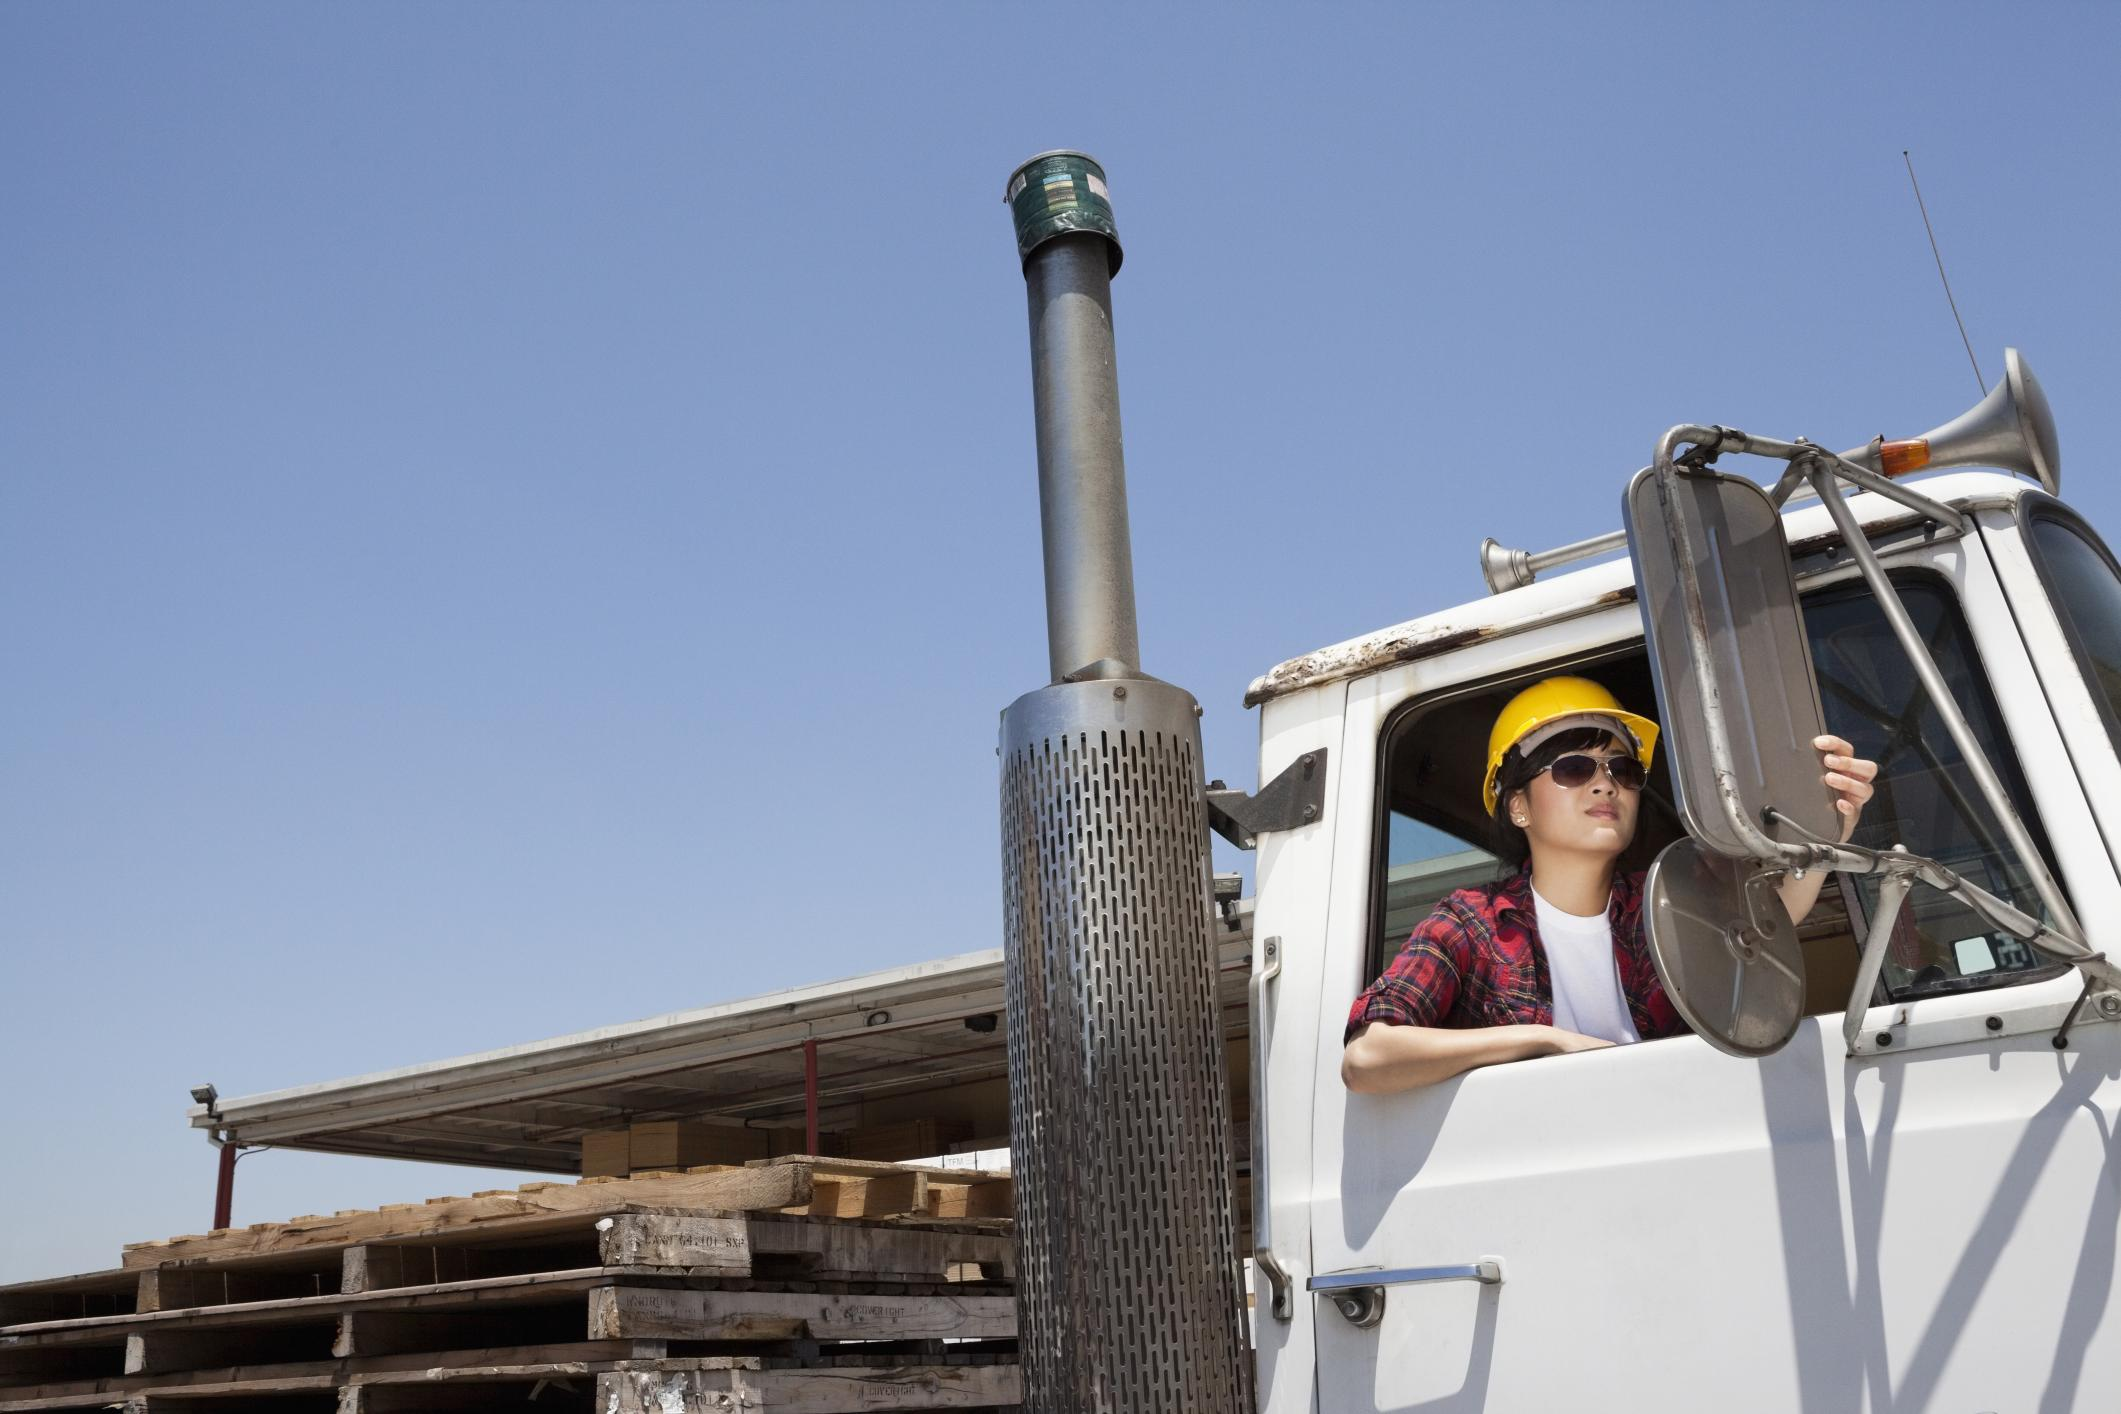 Women making strides proving safer in the male dominated trucking world